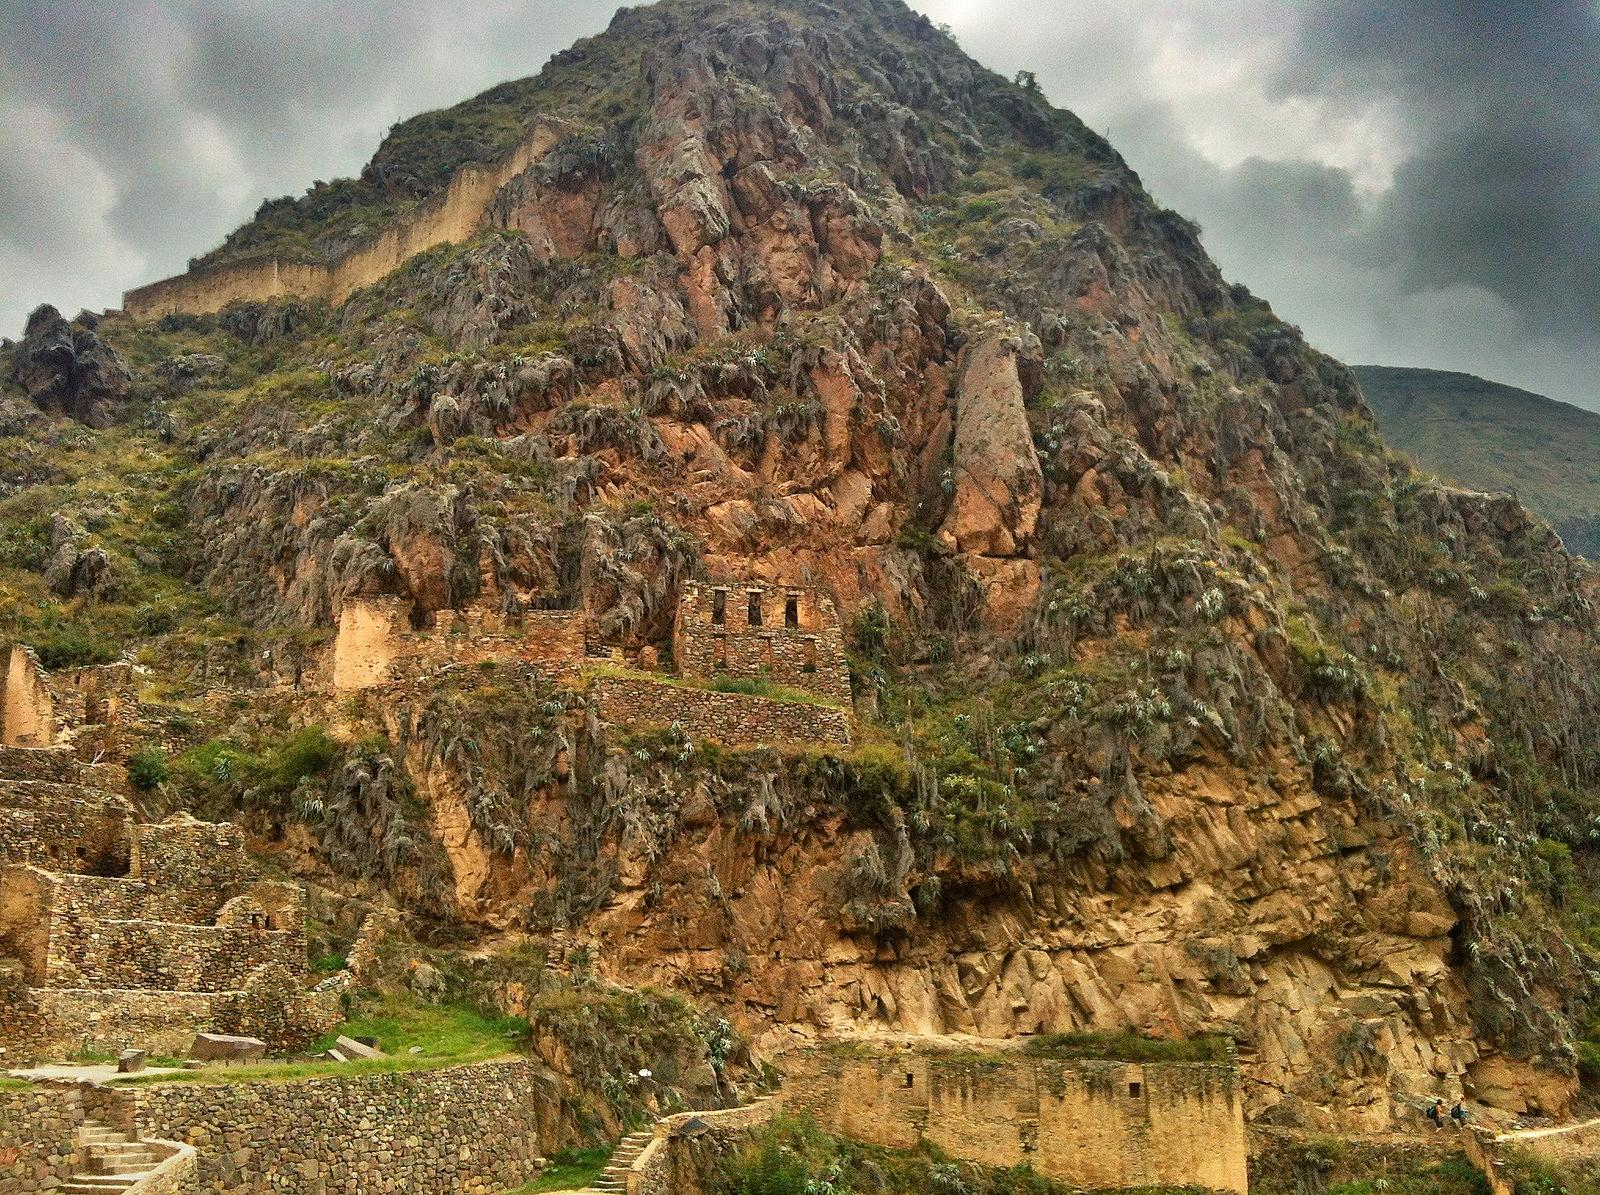 A green mountain inset with yellow brickwork rises in the ancient town of Ollantaytambo.